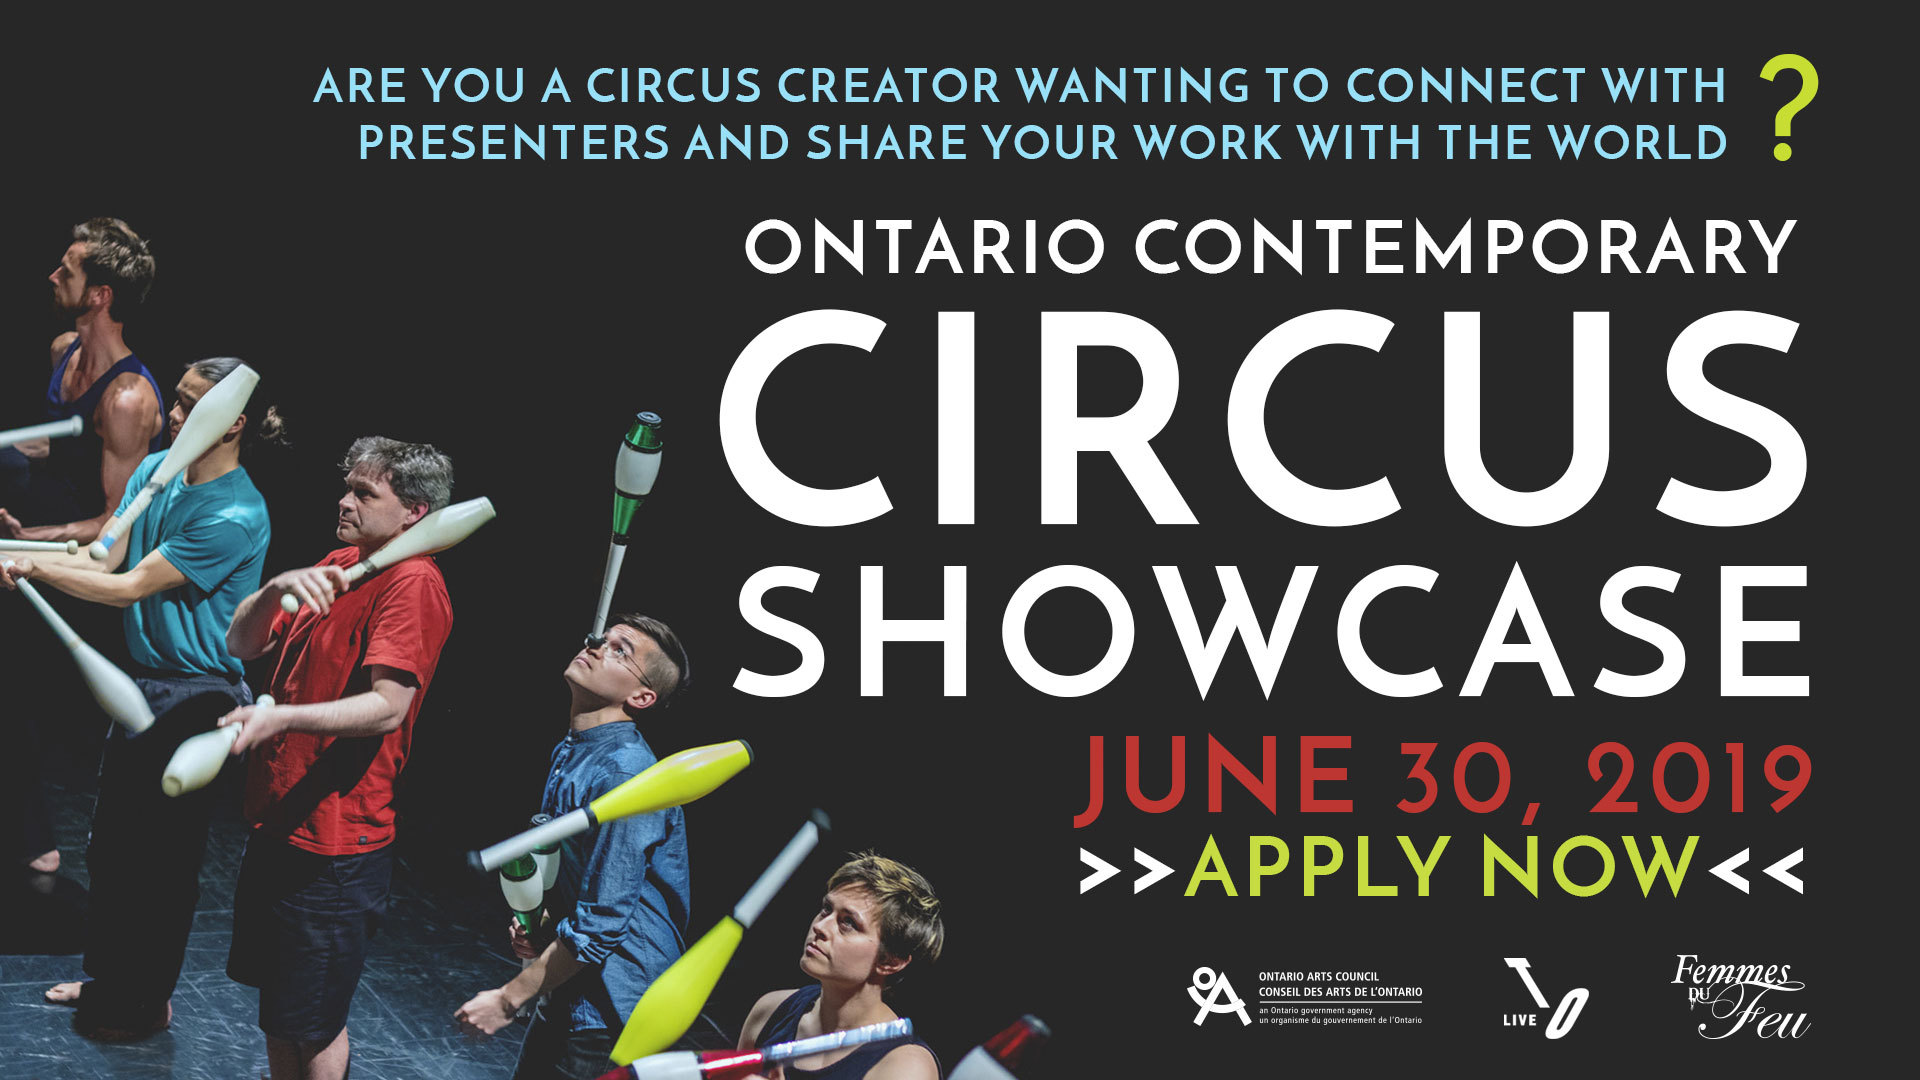 Ontario Contemporary Circus Showcase - Circus Events - CircusTalk